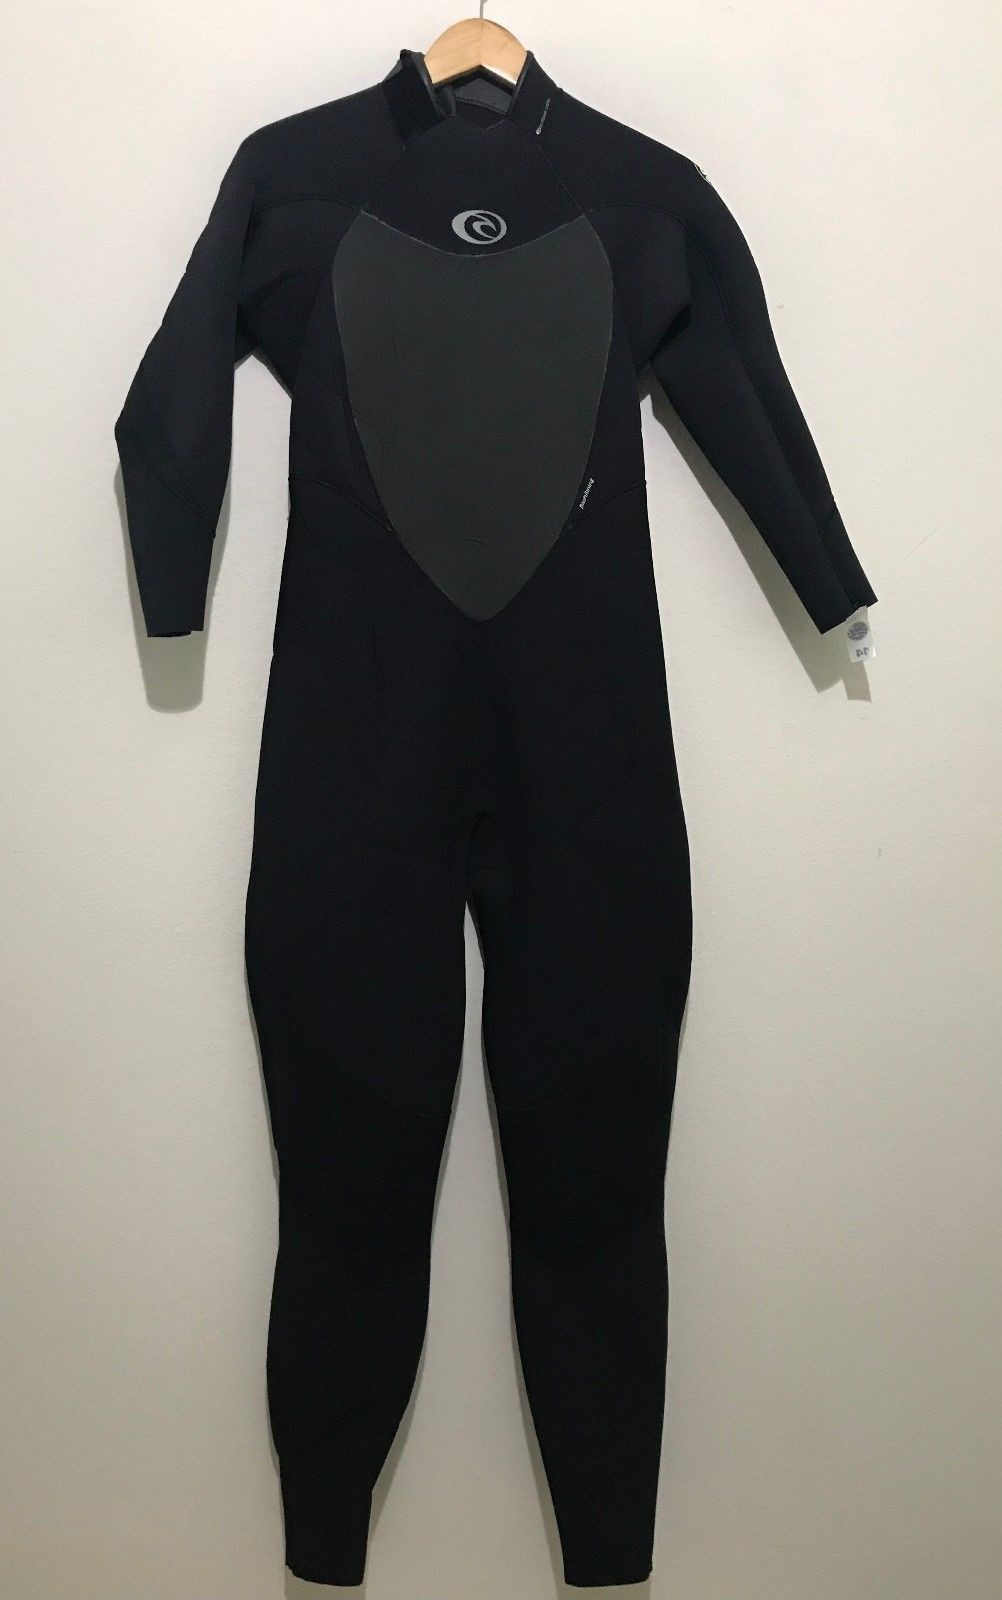 Rip Curl Womens Full Wetsuit E4 Sealed 4 3 NWT Ladies Size 14 - Flash  Lining! 3a2fb4cfb